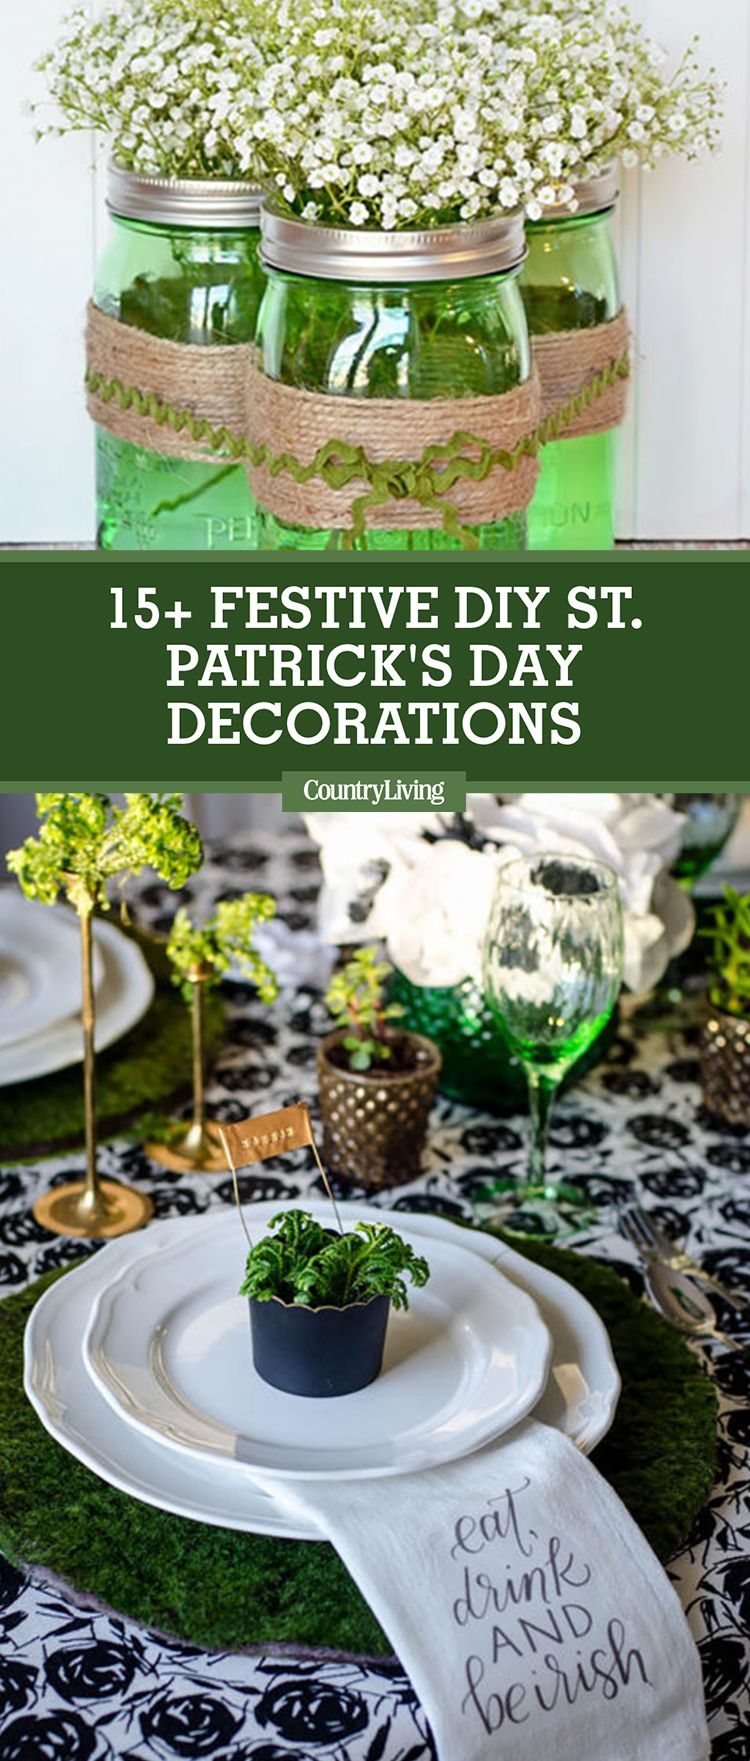 decor saint wallpapers little frankenstein st s cute shamrocks decorations patricks crazy patrick day